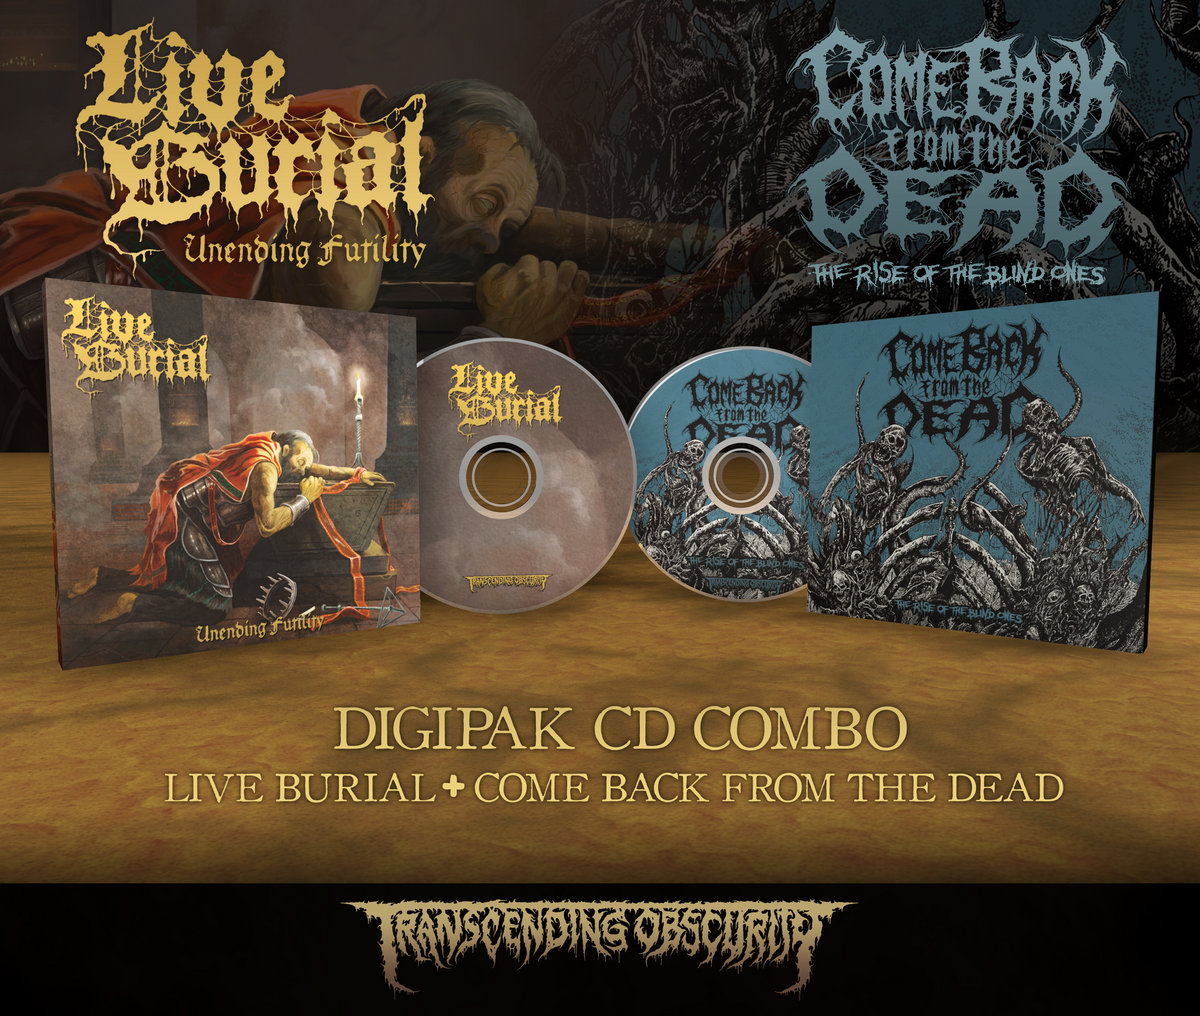 LIVE BURIAL + COME BACK FROM THE DEAD 8-Panel Digipak CD Combo